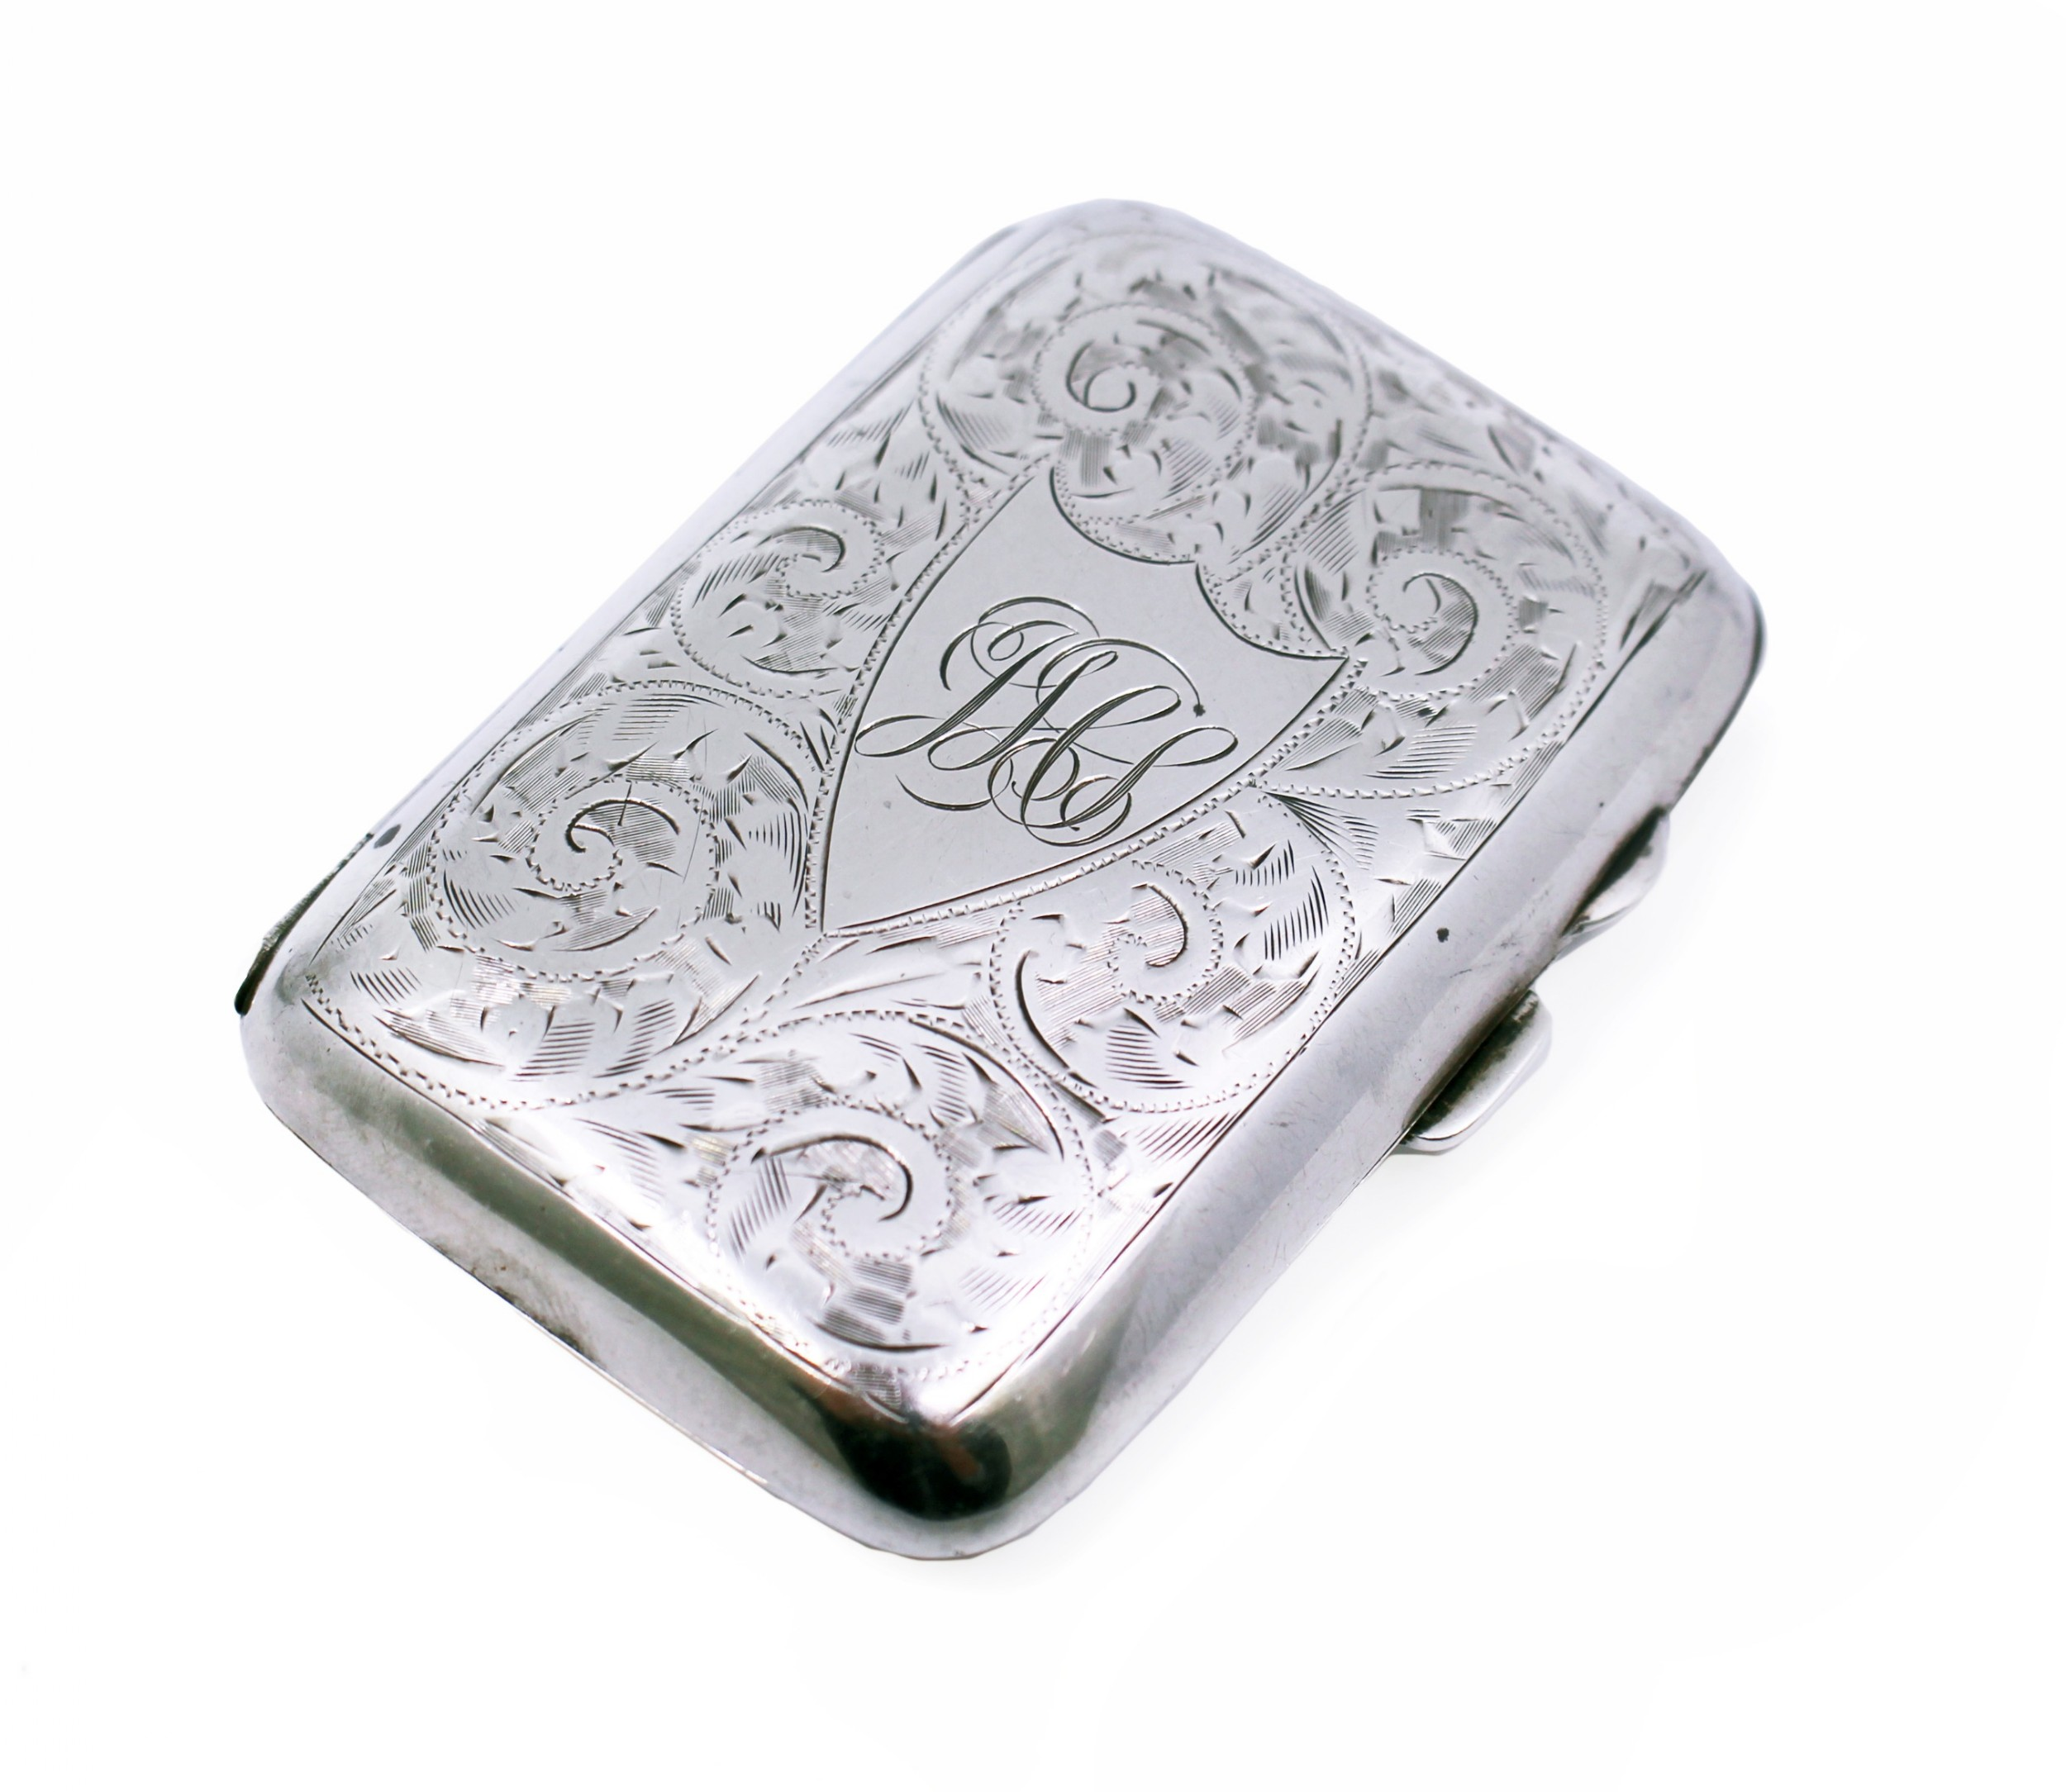 engraved solid silver early 20th c cigarette case